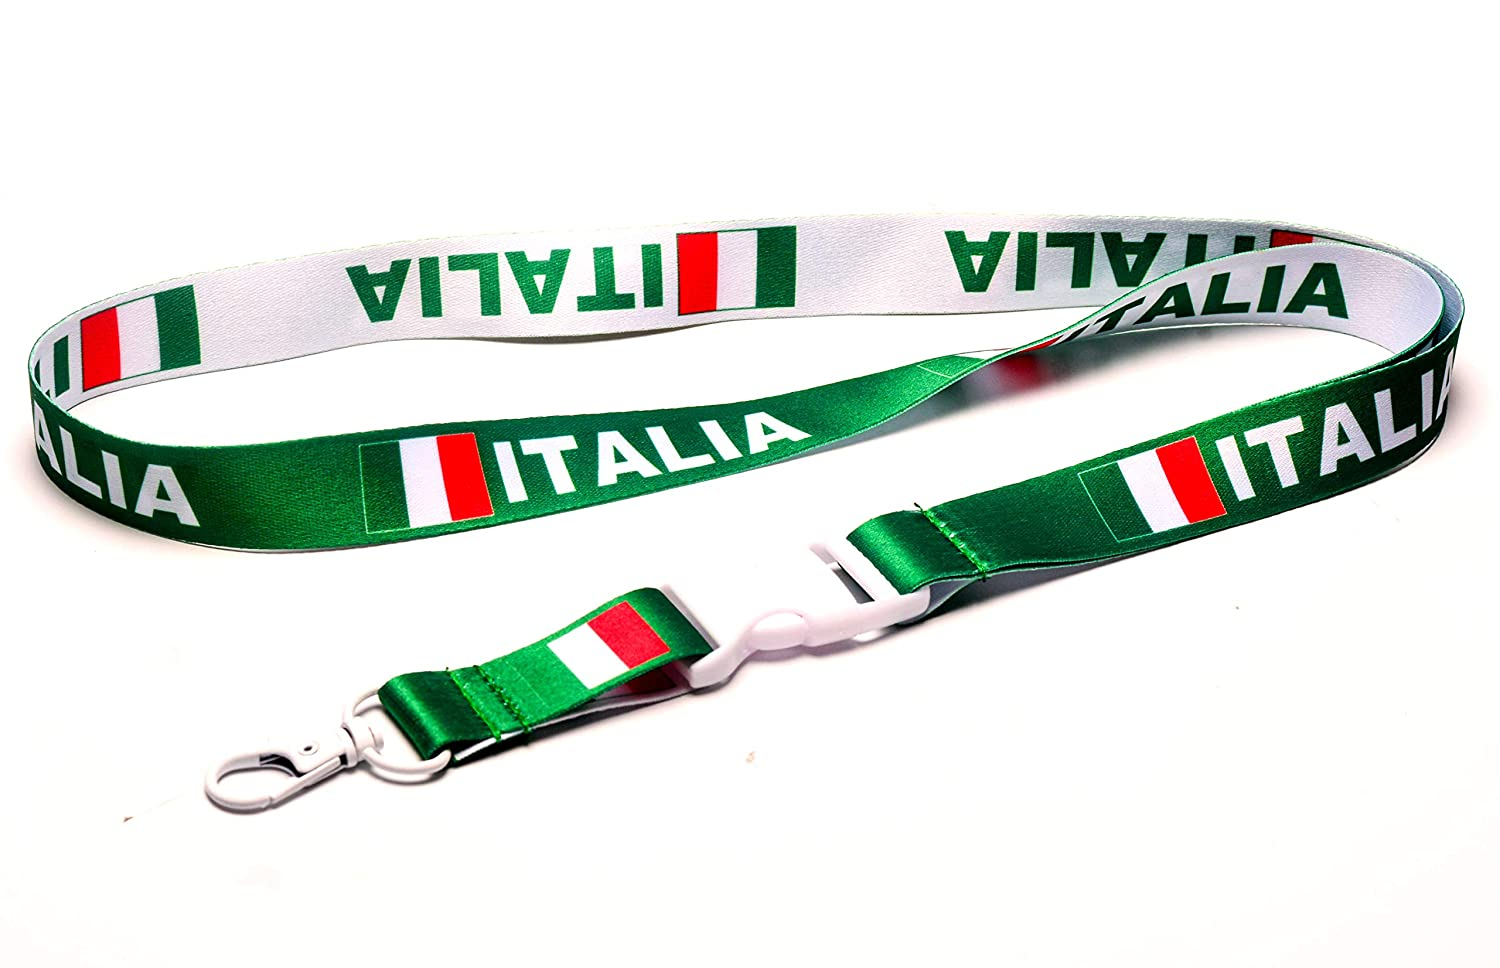 Italia/Italy Flag Reversible Lanyard Keychain with Quick Release Snap Buckle and Metal Clasp - ID Lanyard for Keys, Badges, Whistle - ID Holder ...